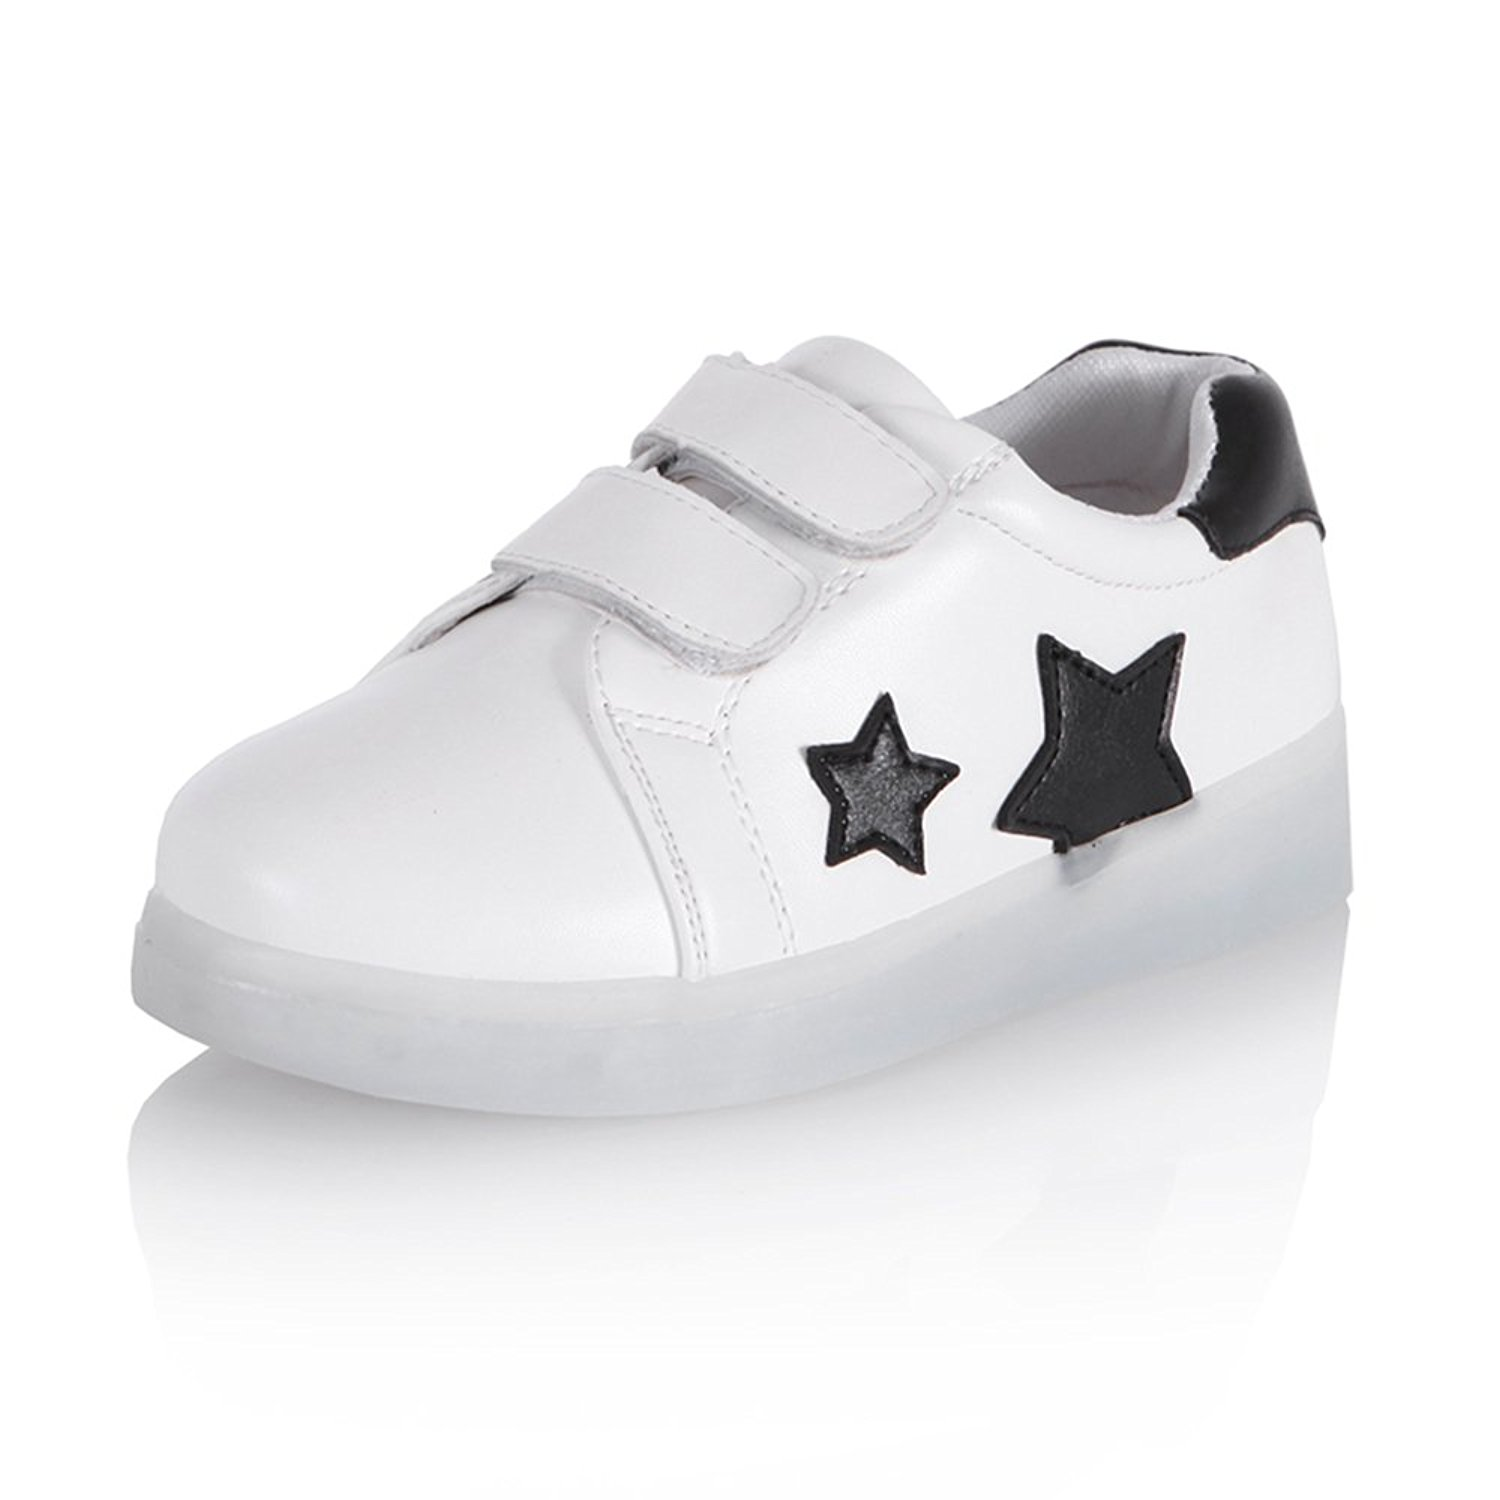 4d9a7b65ceaf Get Quotations · Led kid Light Up Shoes Boys Girls Trainers Star Trainers 7  Colors Light USB Charge Best